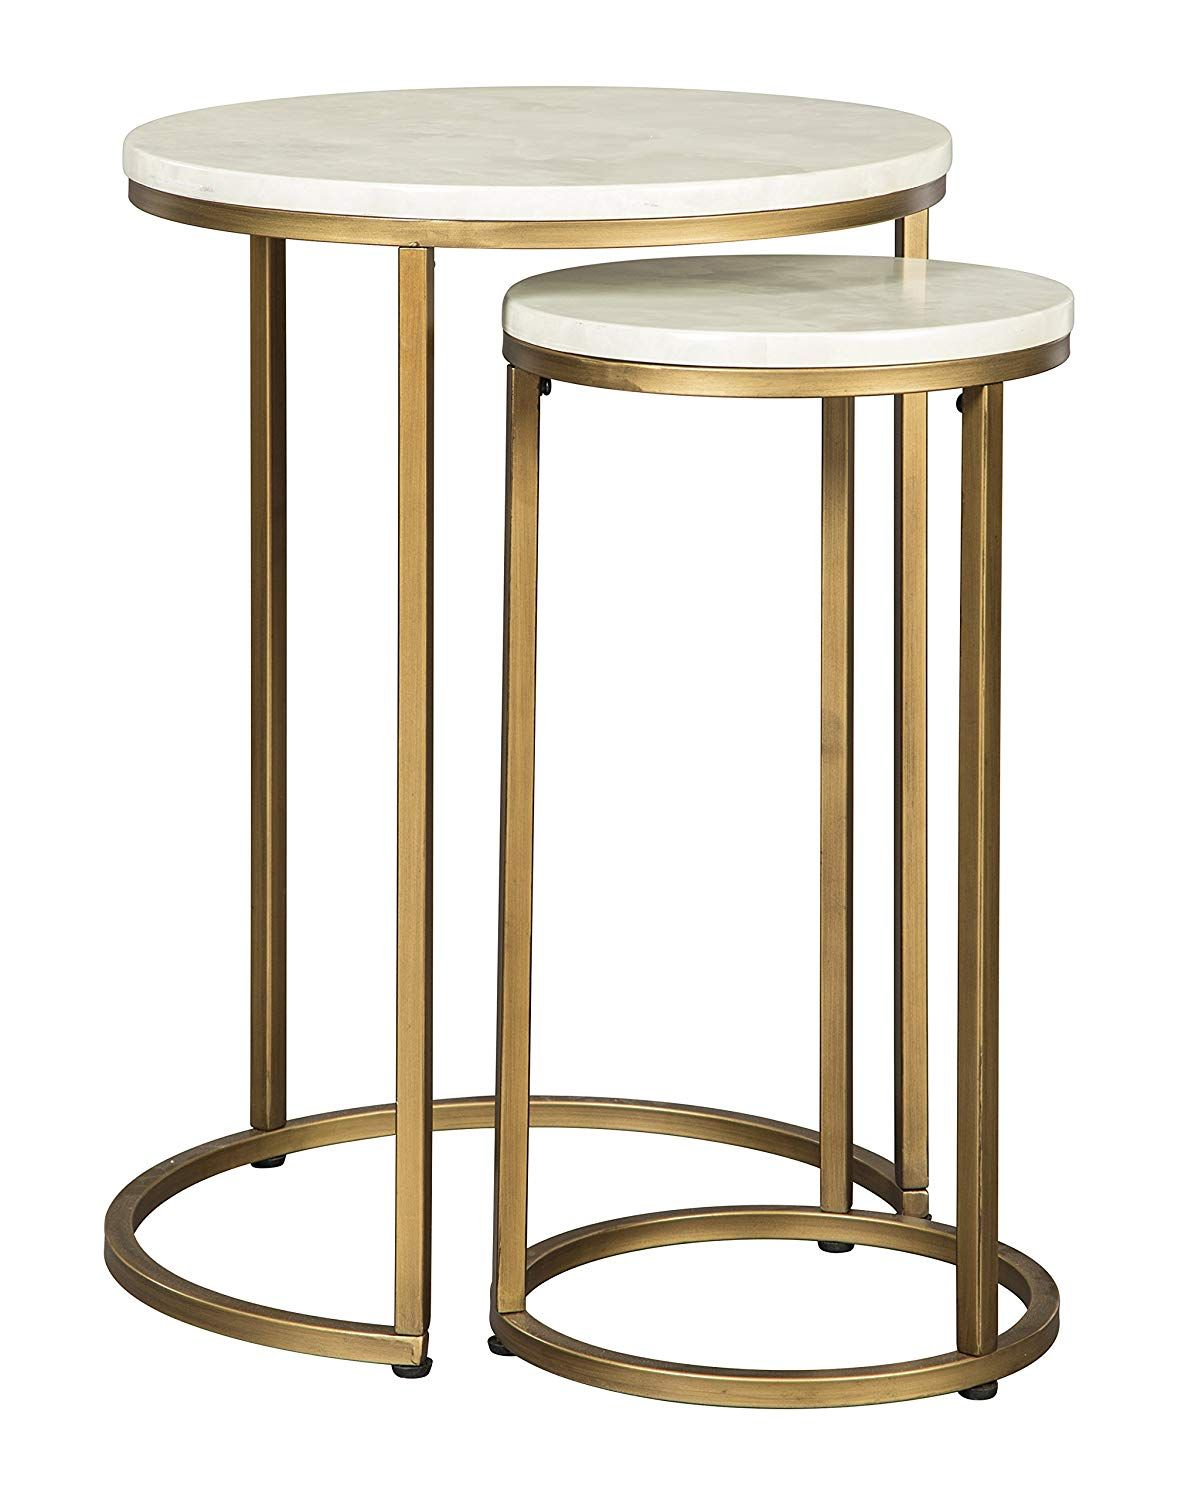 ashley furniture signature design britzwald contemporary on exclusive modern nesting end tables design ideas very functional furnishings id=45895